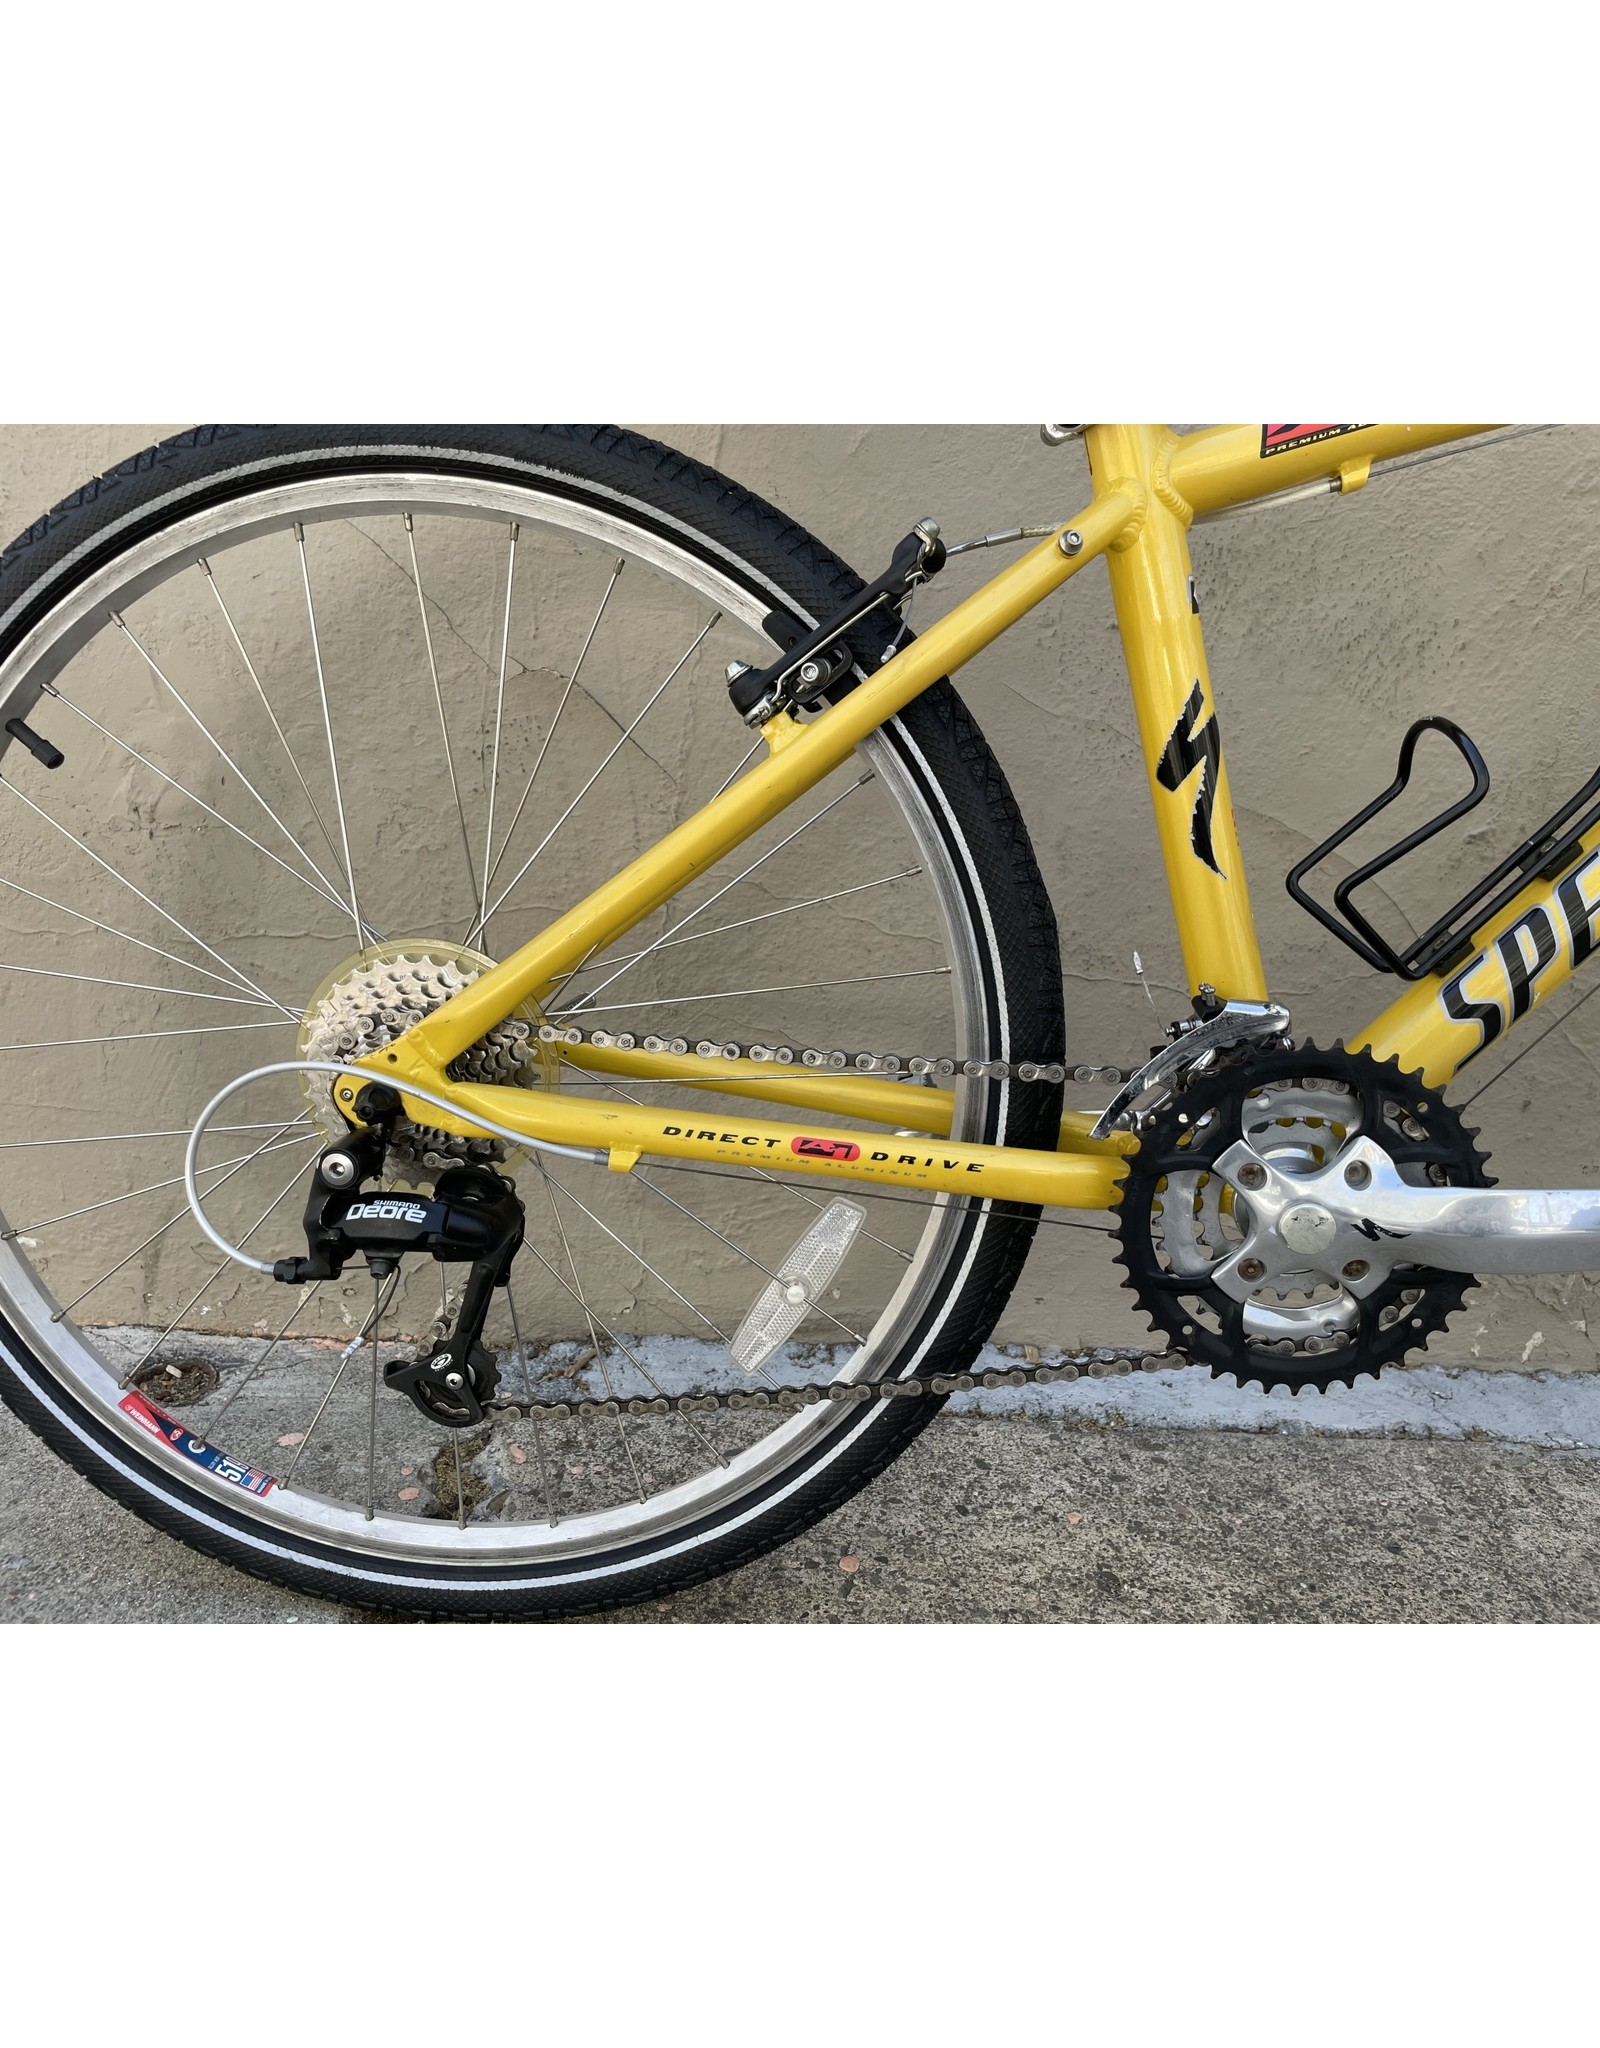 Specialized Specialized Hardrock Comp Vintage, 2001, Yellow, 15 Inches